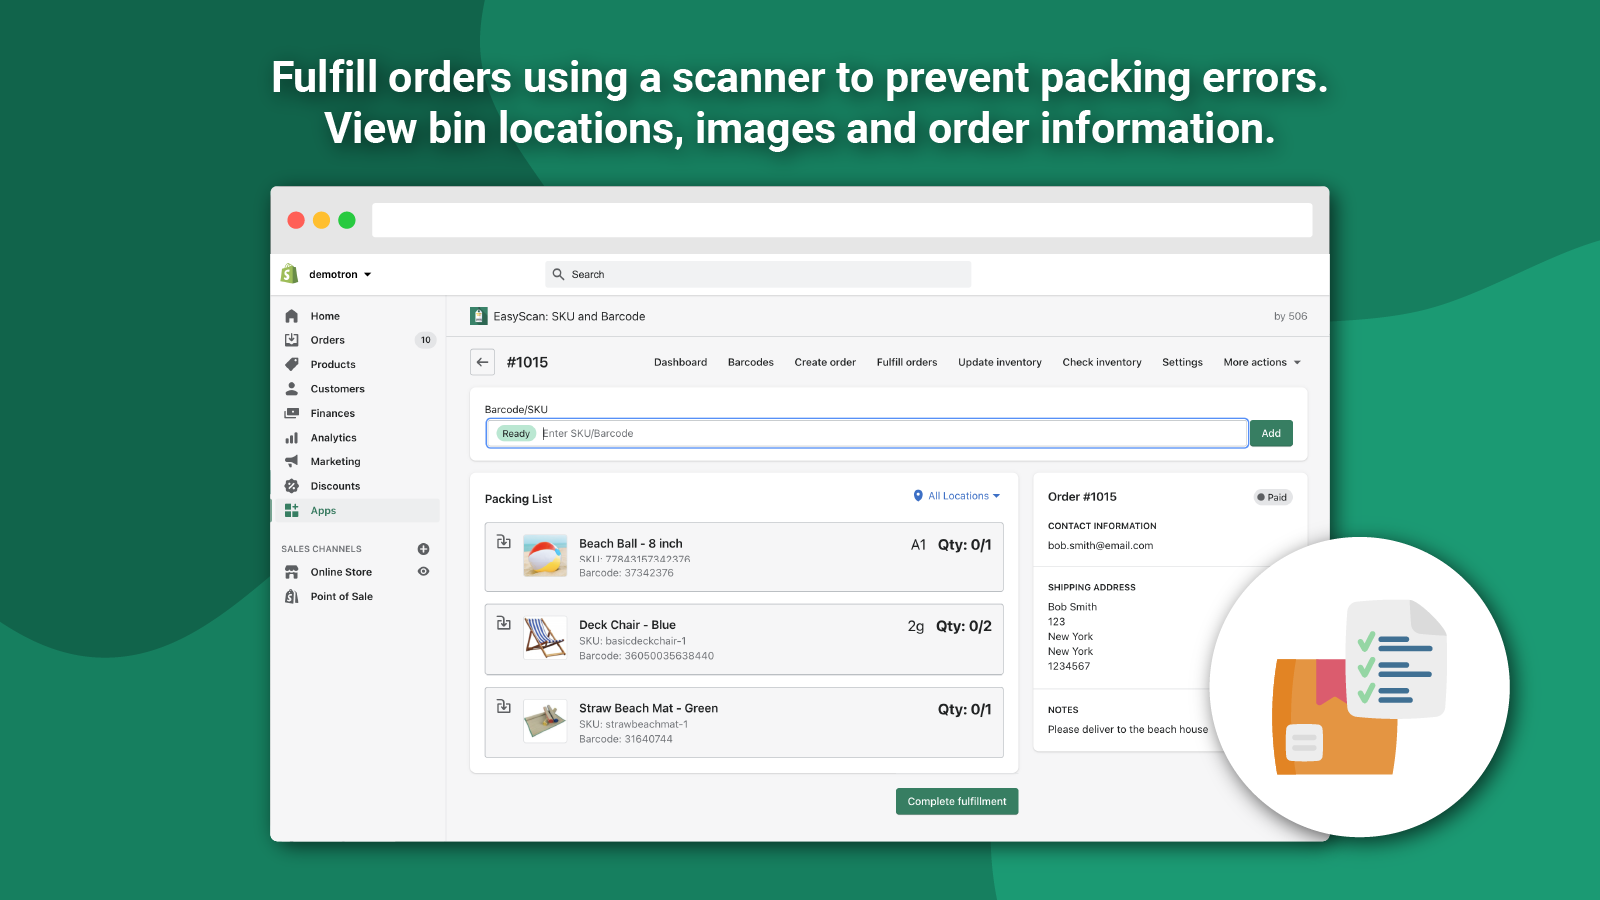 Fulfill orders using a scanner to prevent packing errors